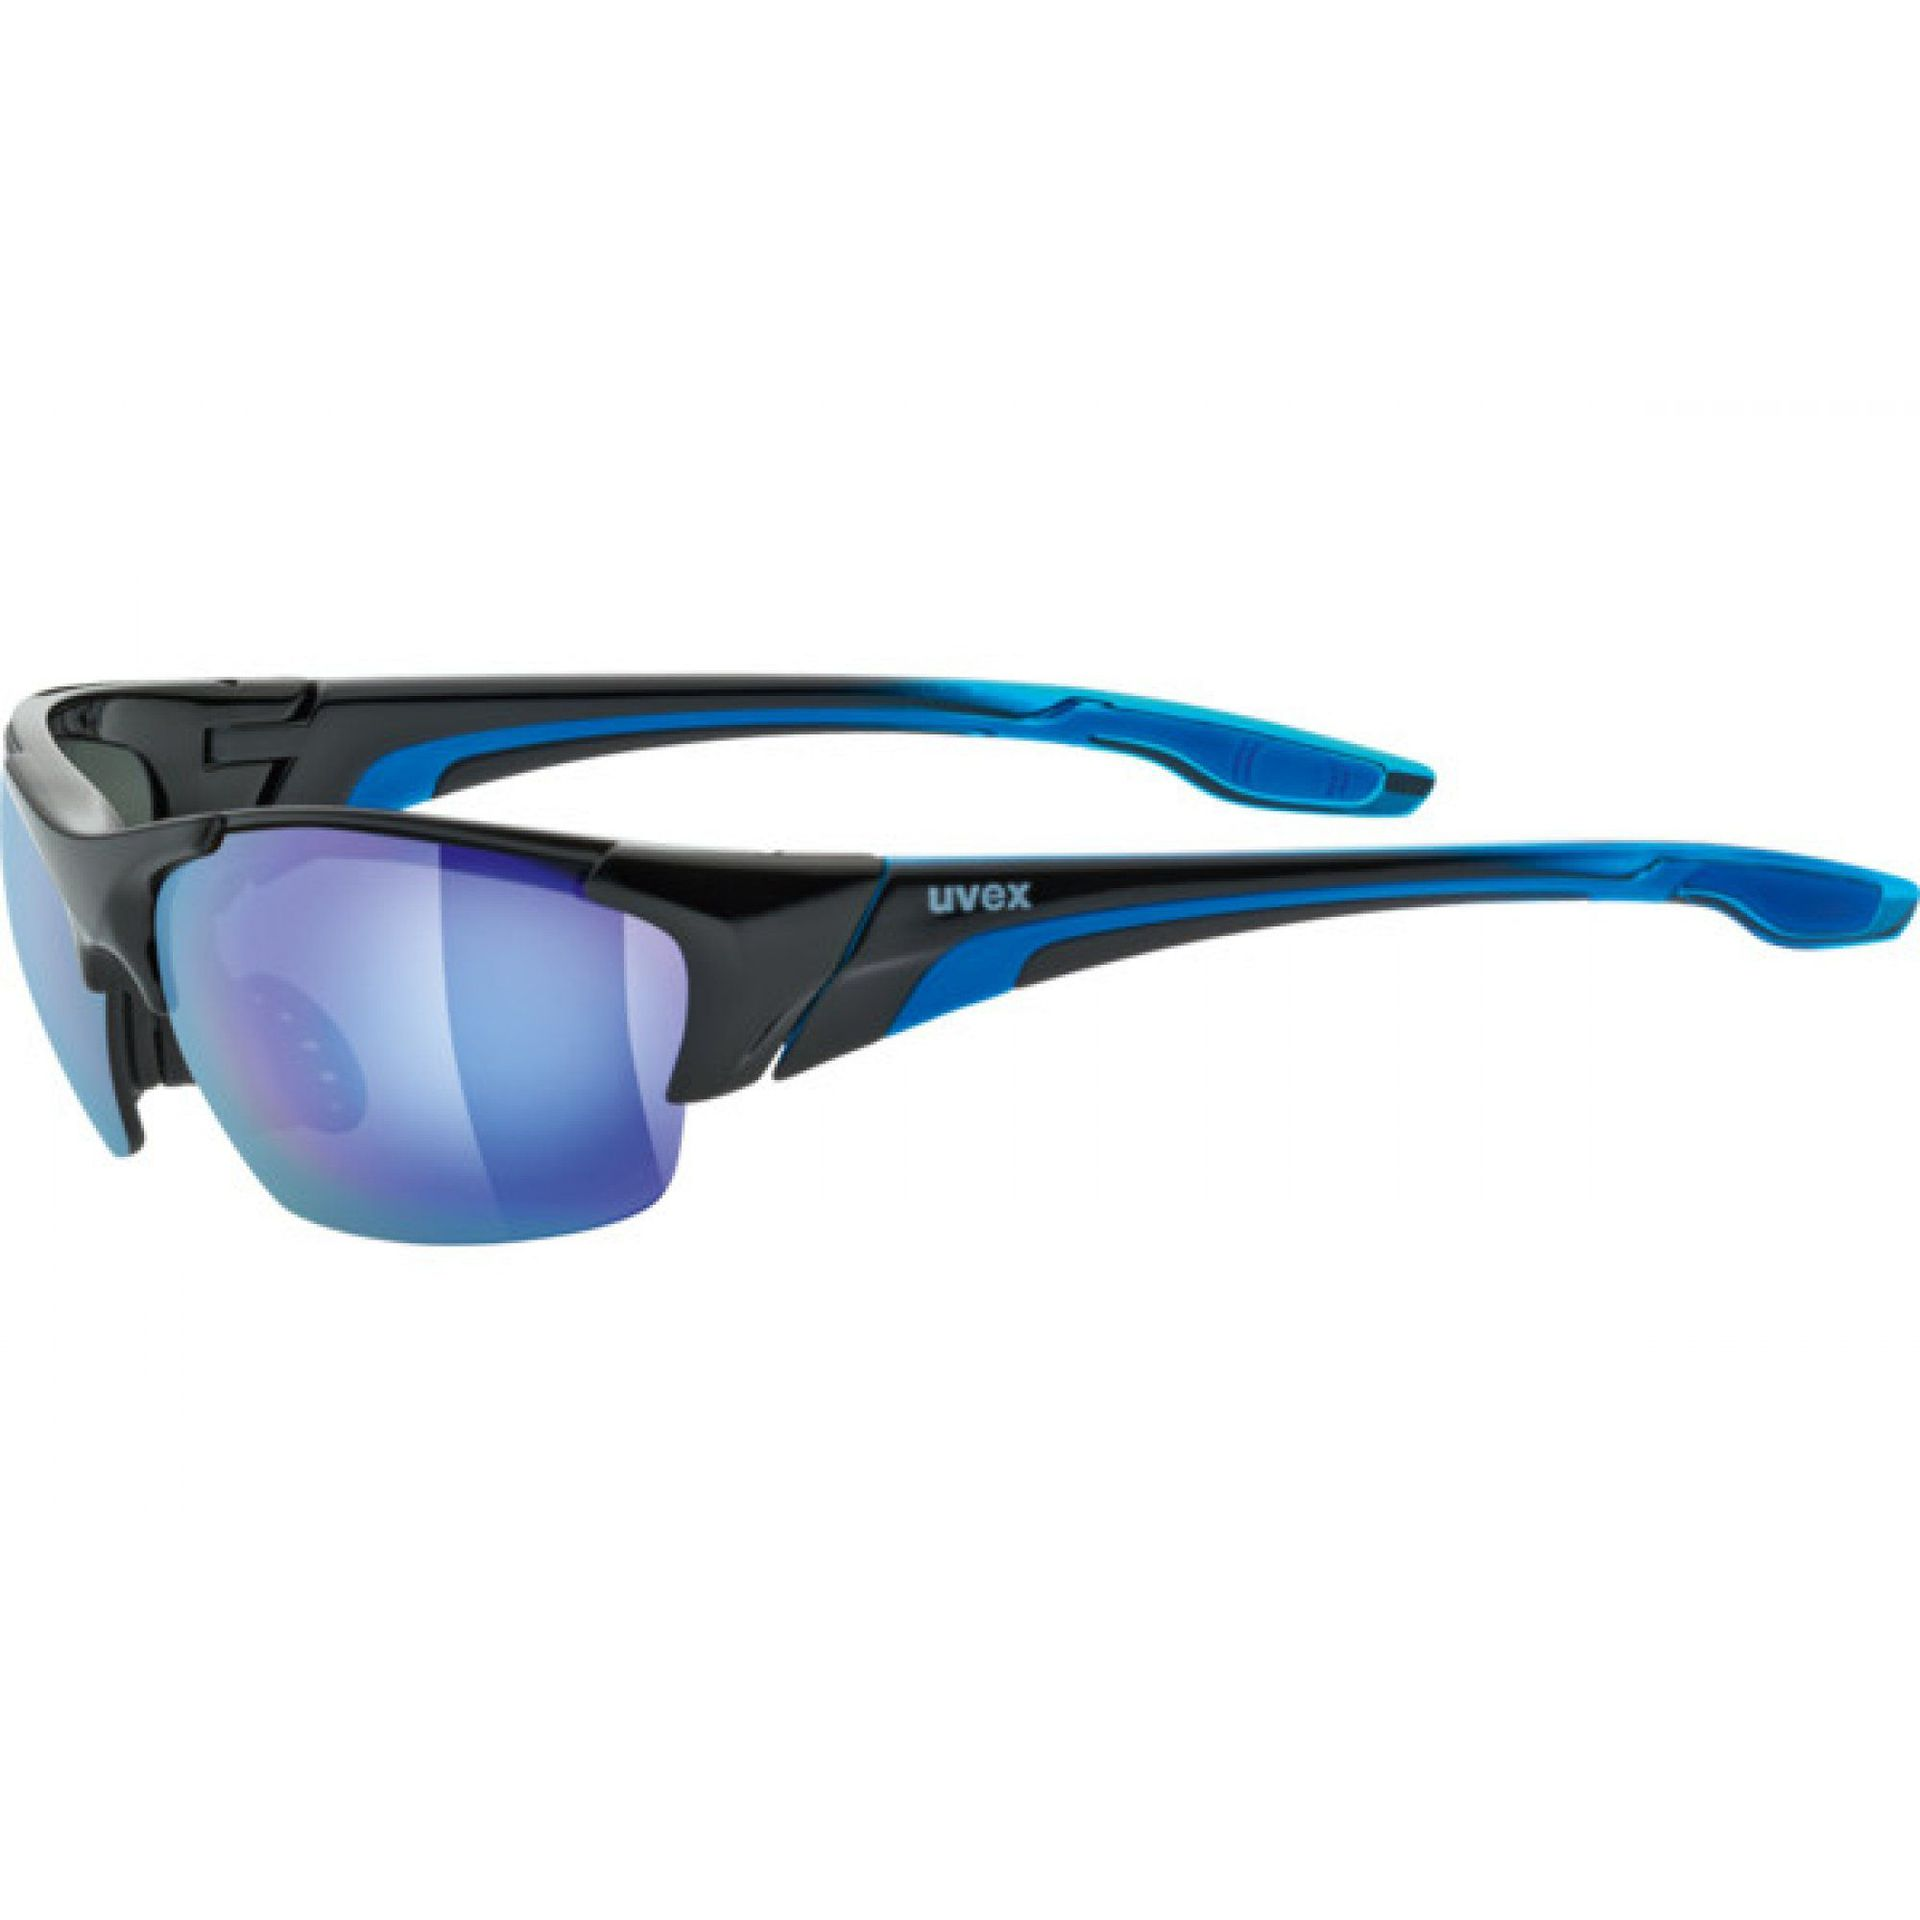 OKULARY UVEX BLAZE III 604|2416 BLACK|BLUE